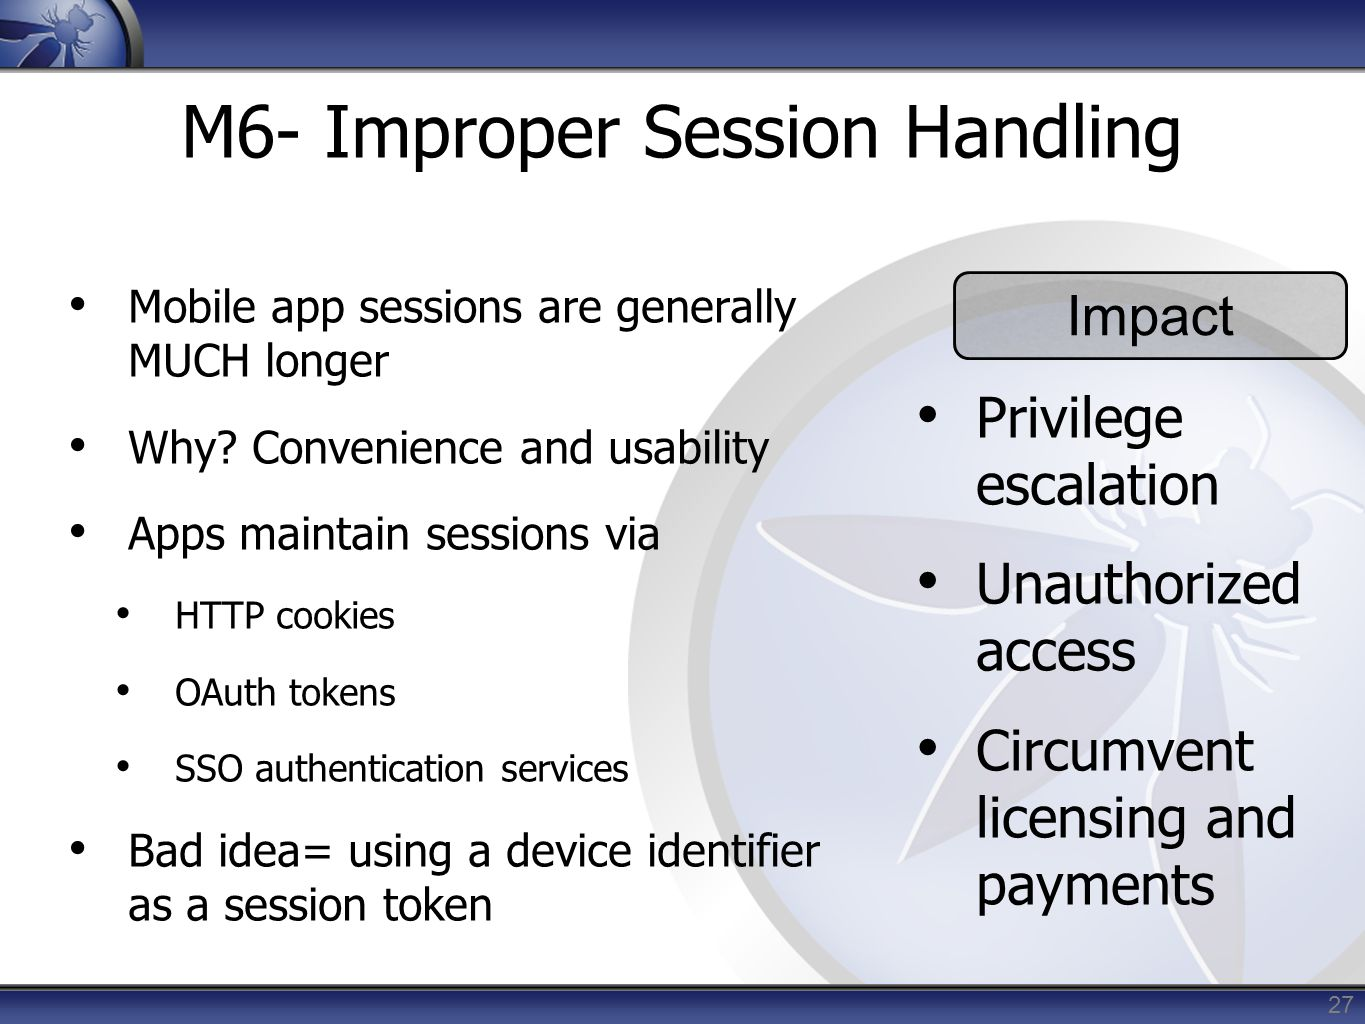 27 M6- Improper Session Handling Mobile app sessions are generally MUCH longer Why? Convenience and usability Apps maintain sessions via HTTP cookies